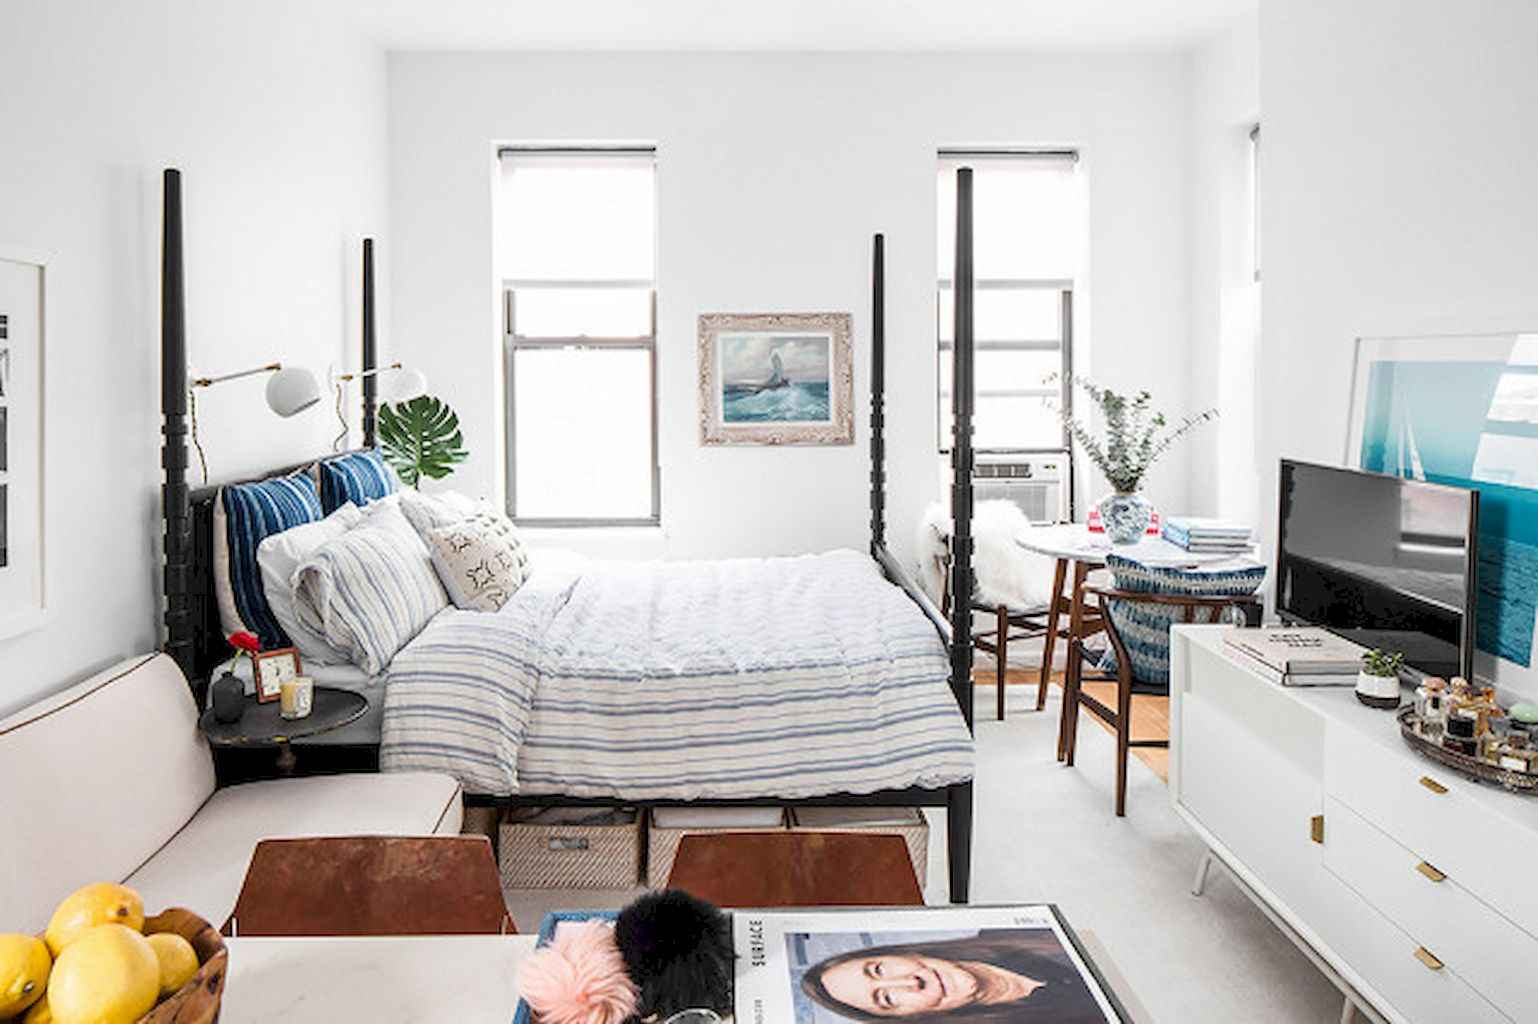 Cool small apartment decorating ideas on a budget (41)